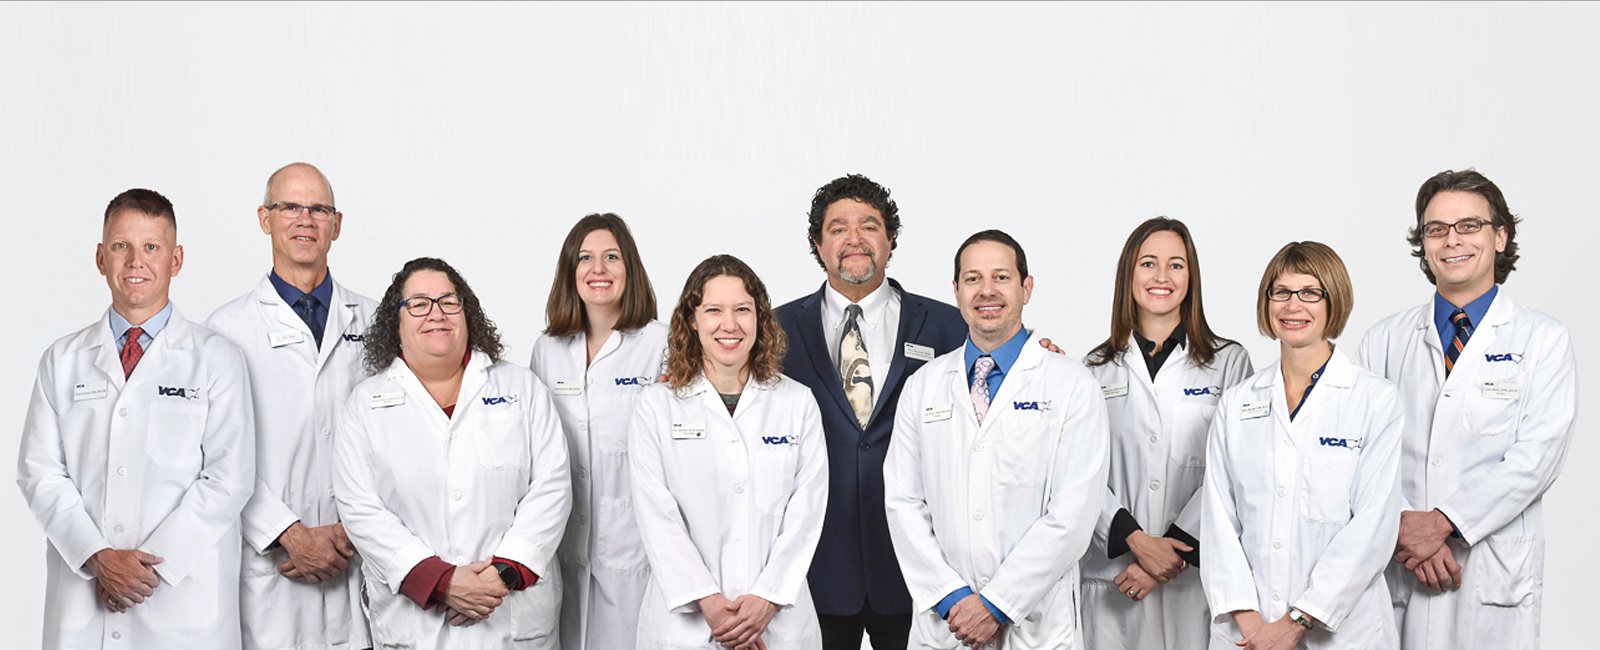 Team Picture of VCA Veterinary Care Animal Hospital